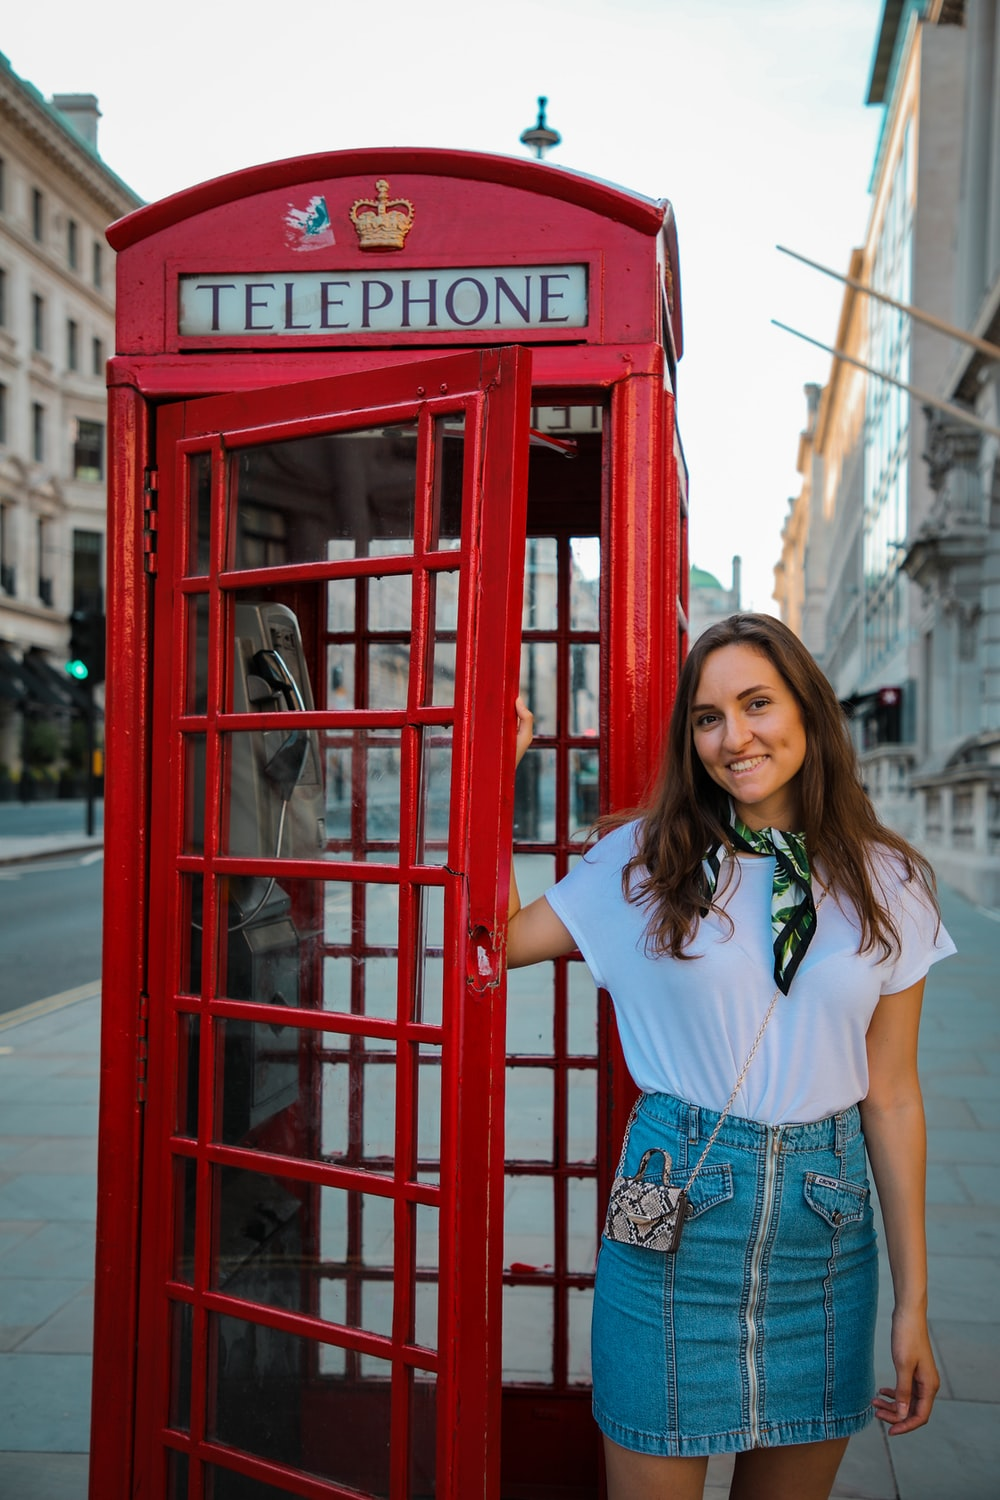 woman in white shirt and blue denim shorts standing beside red telephone booth during daytime